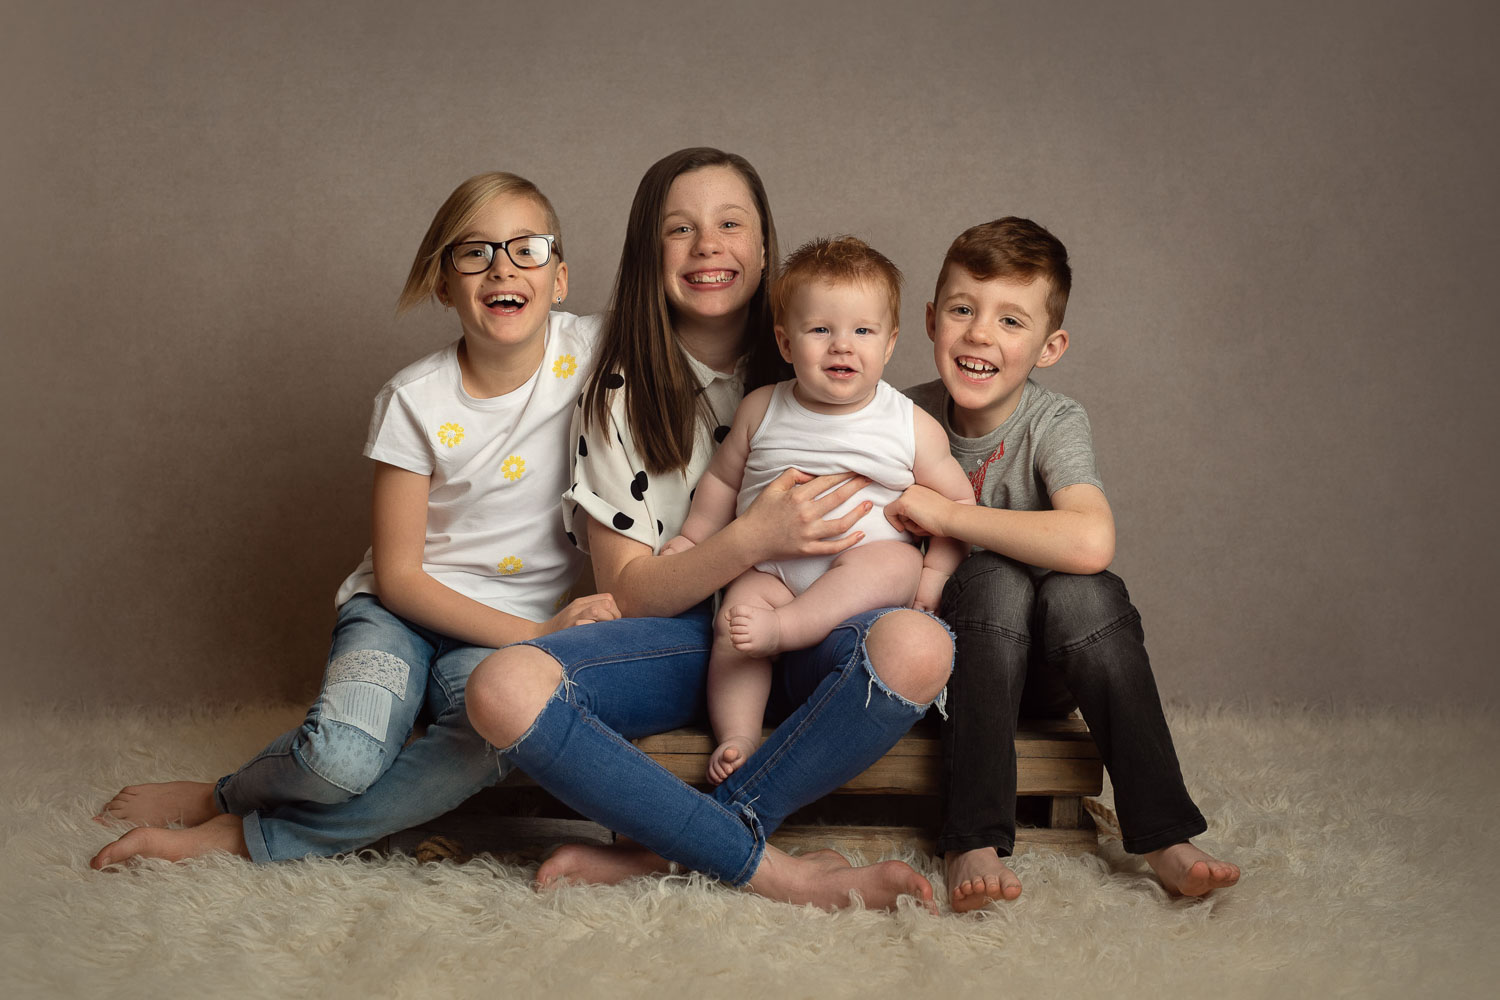 family photography by auckland photographer siobhan kelly photography